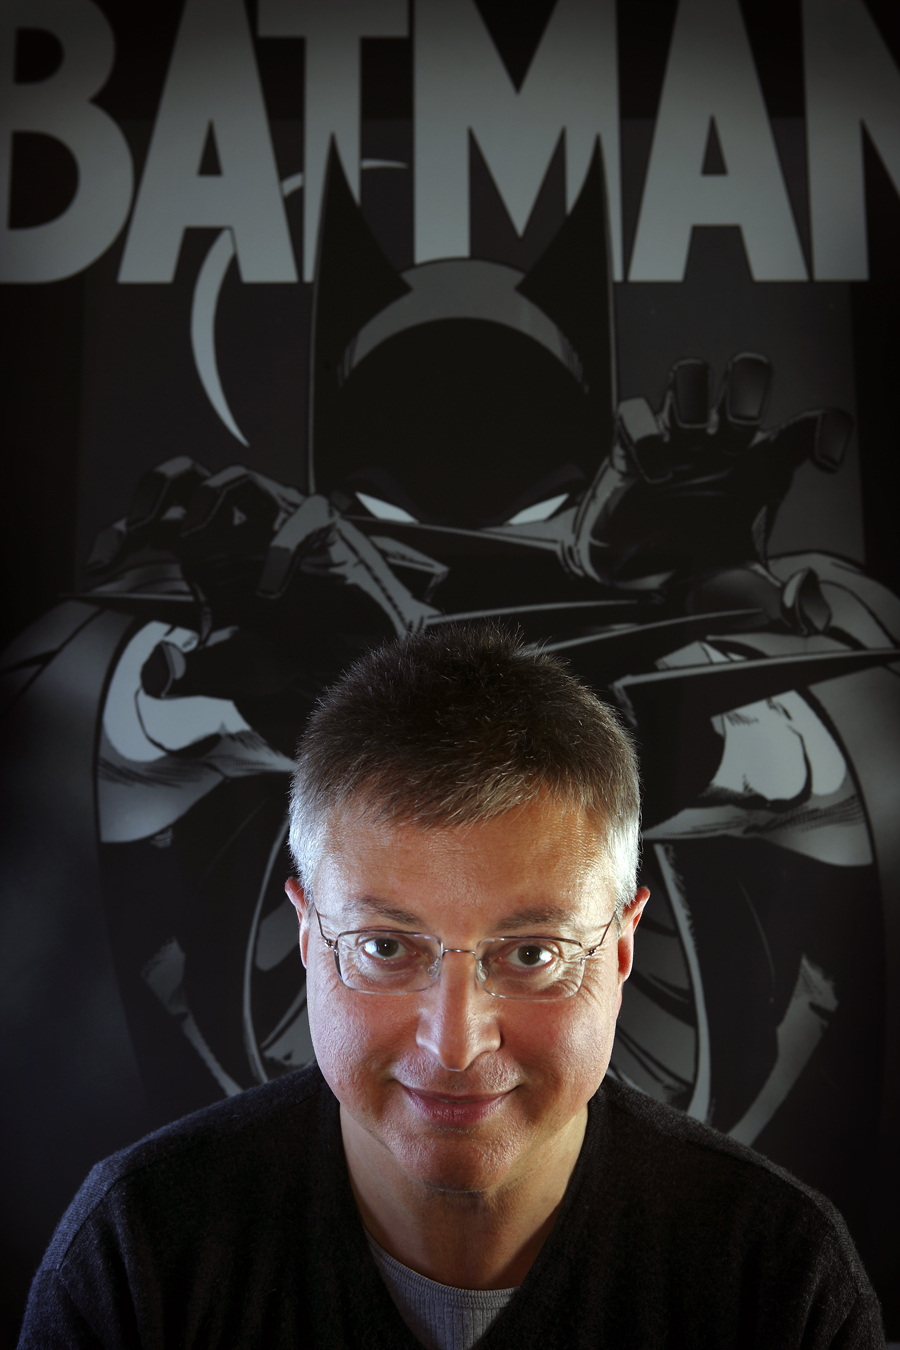 He turned a comic book obsession into an empire: Michael Uslan, an executive producer of Batman movies, to speak at WSU